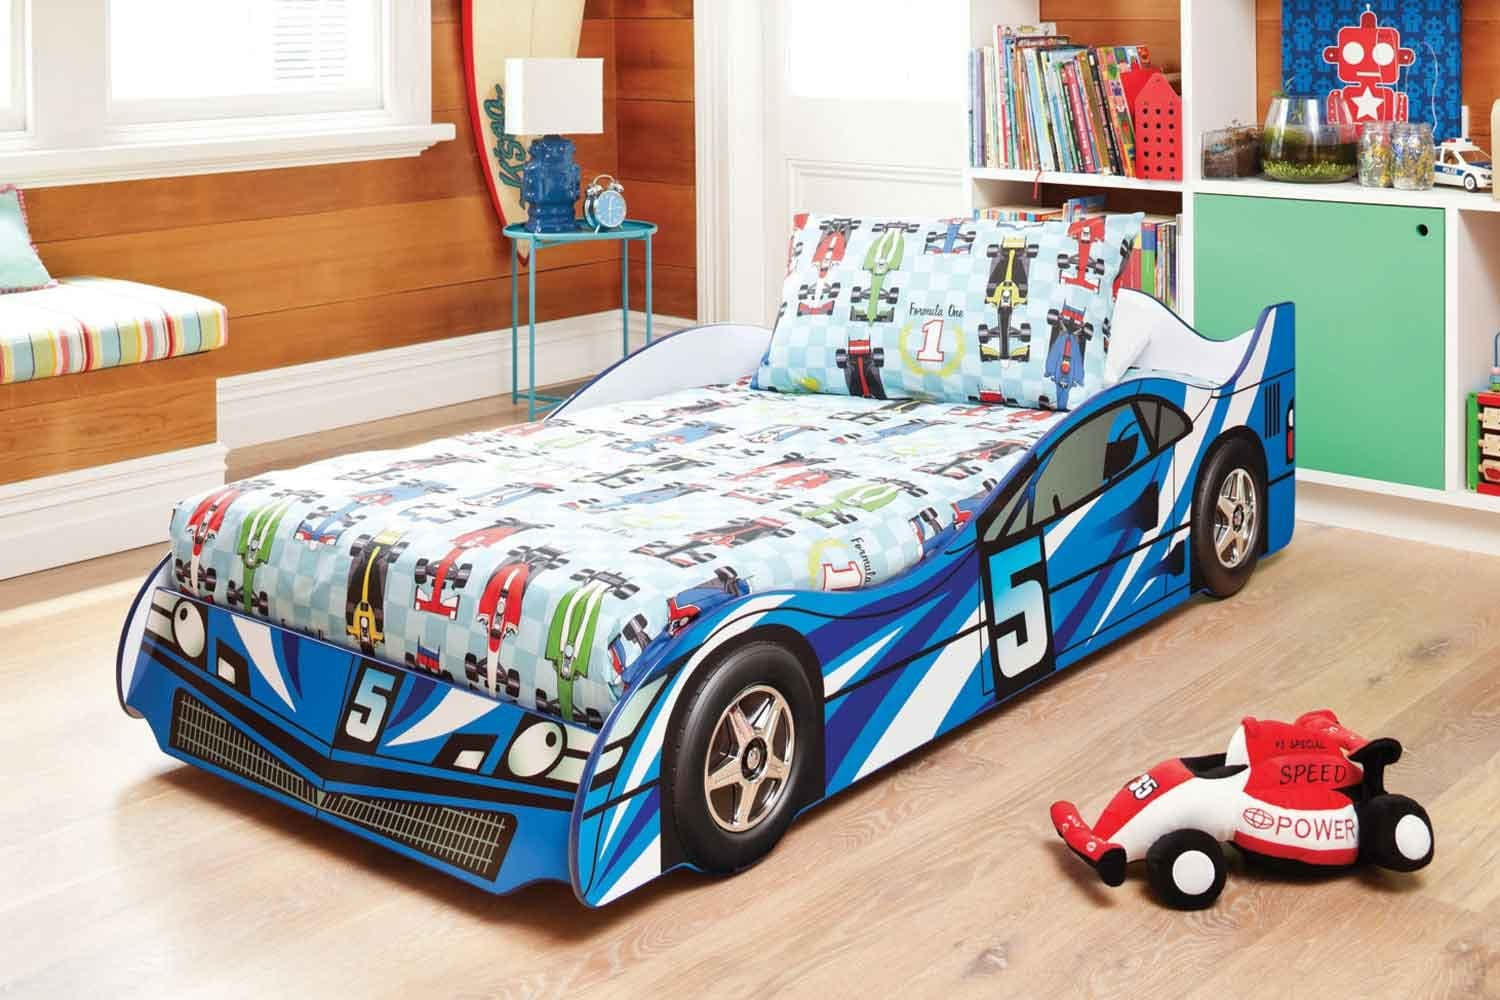 Typical sports car in blue for small kids' room